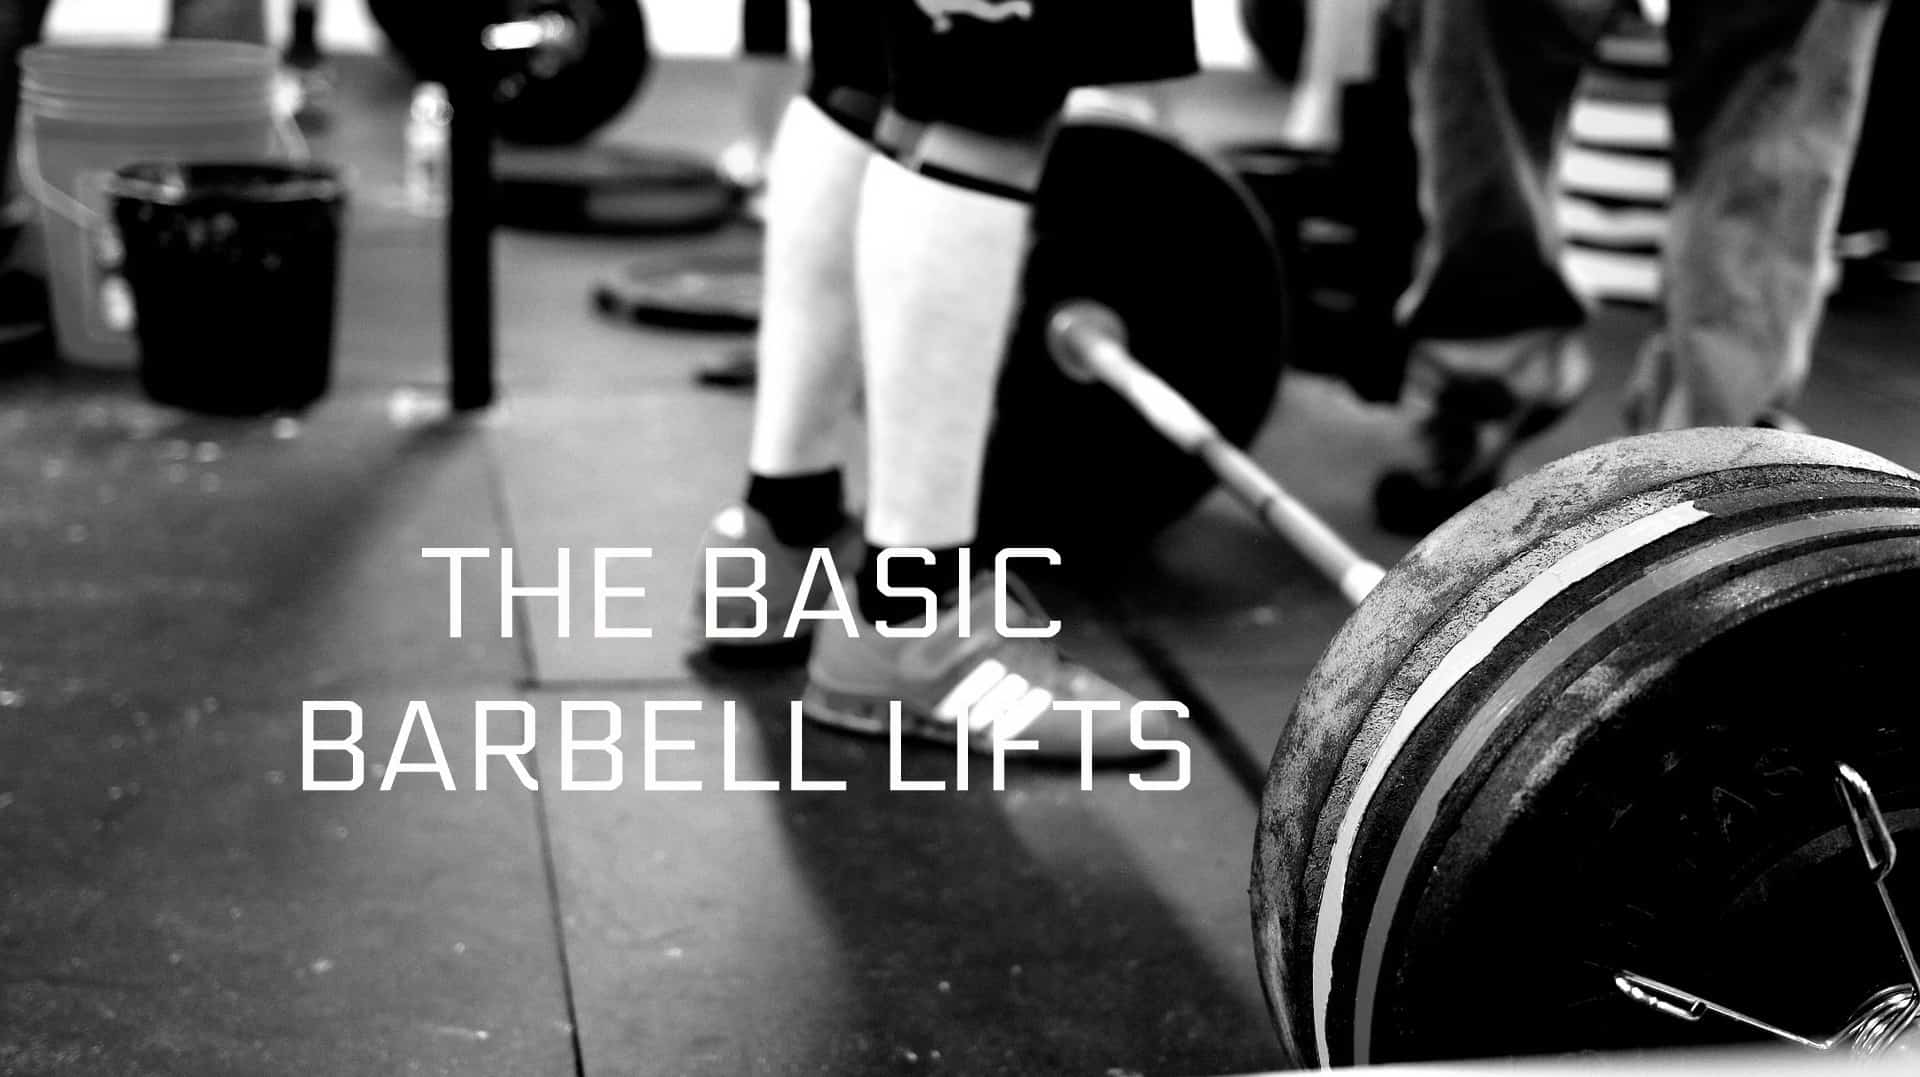 The Basic Barbell Lifts